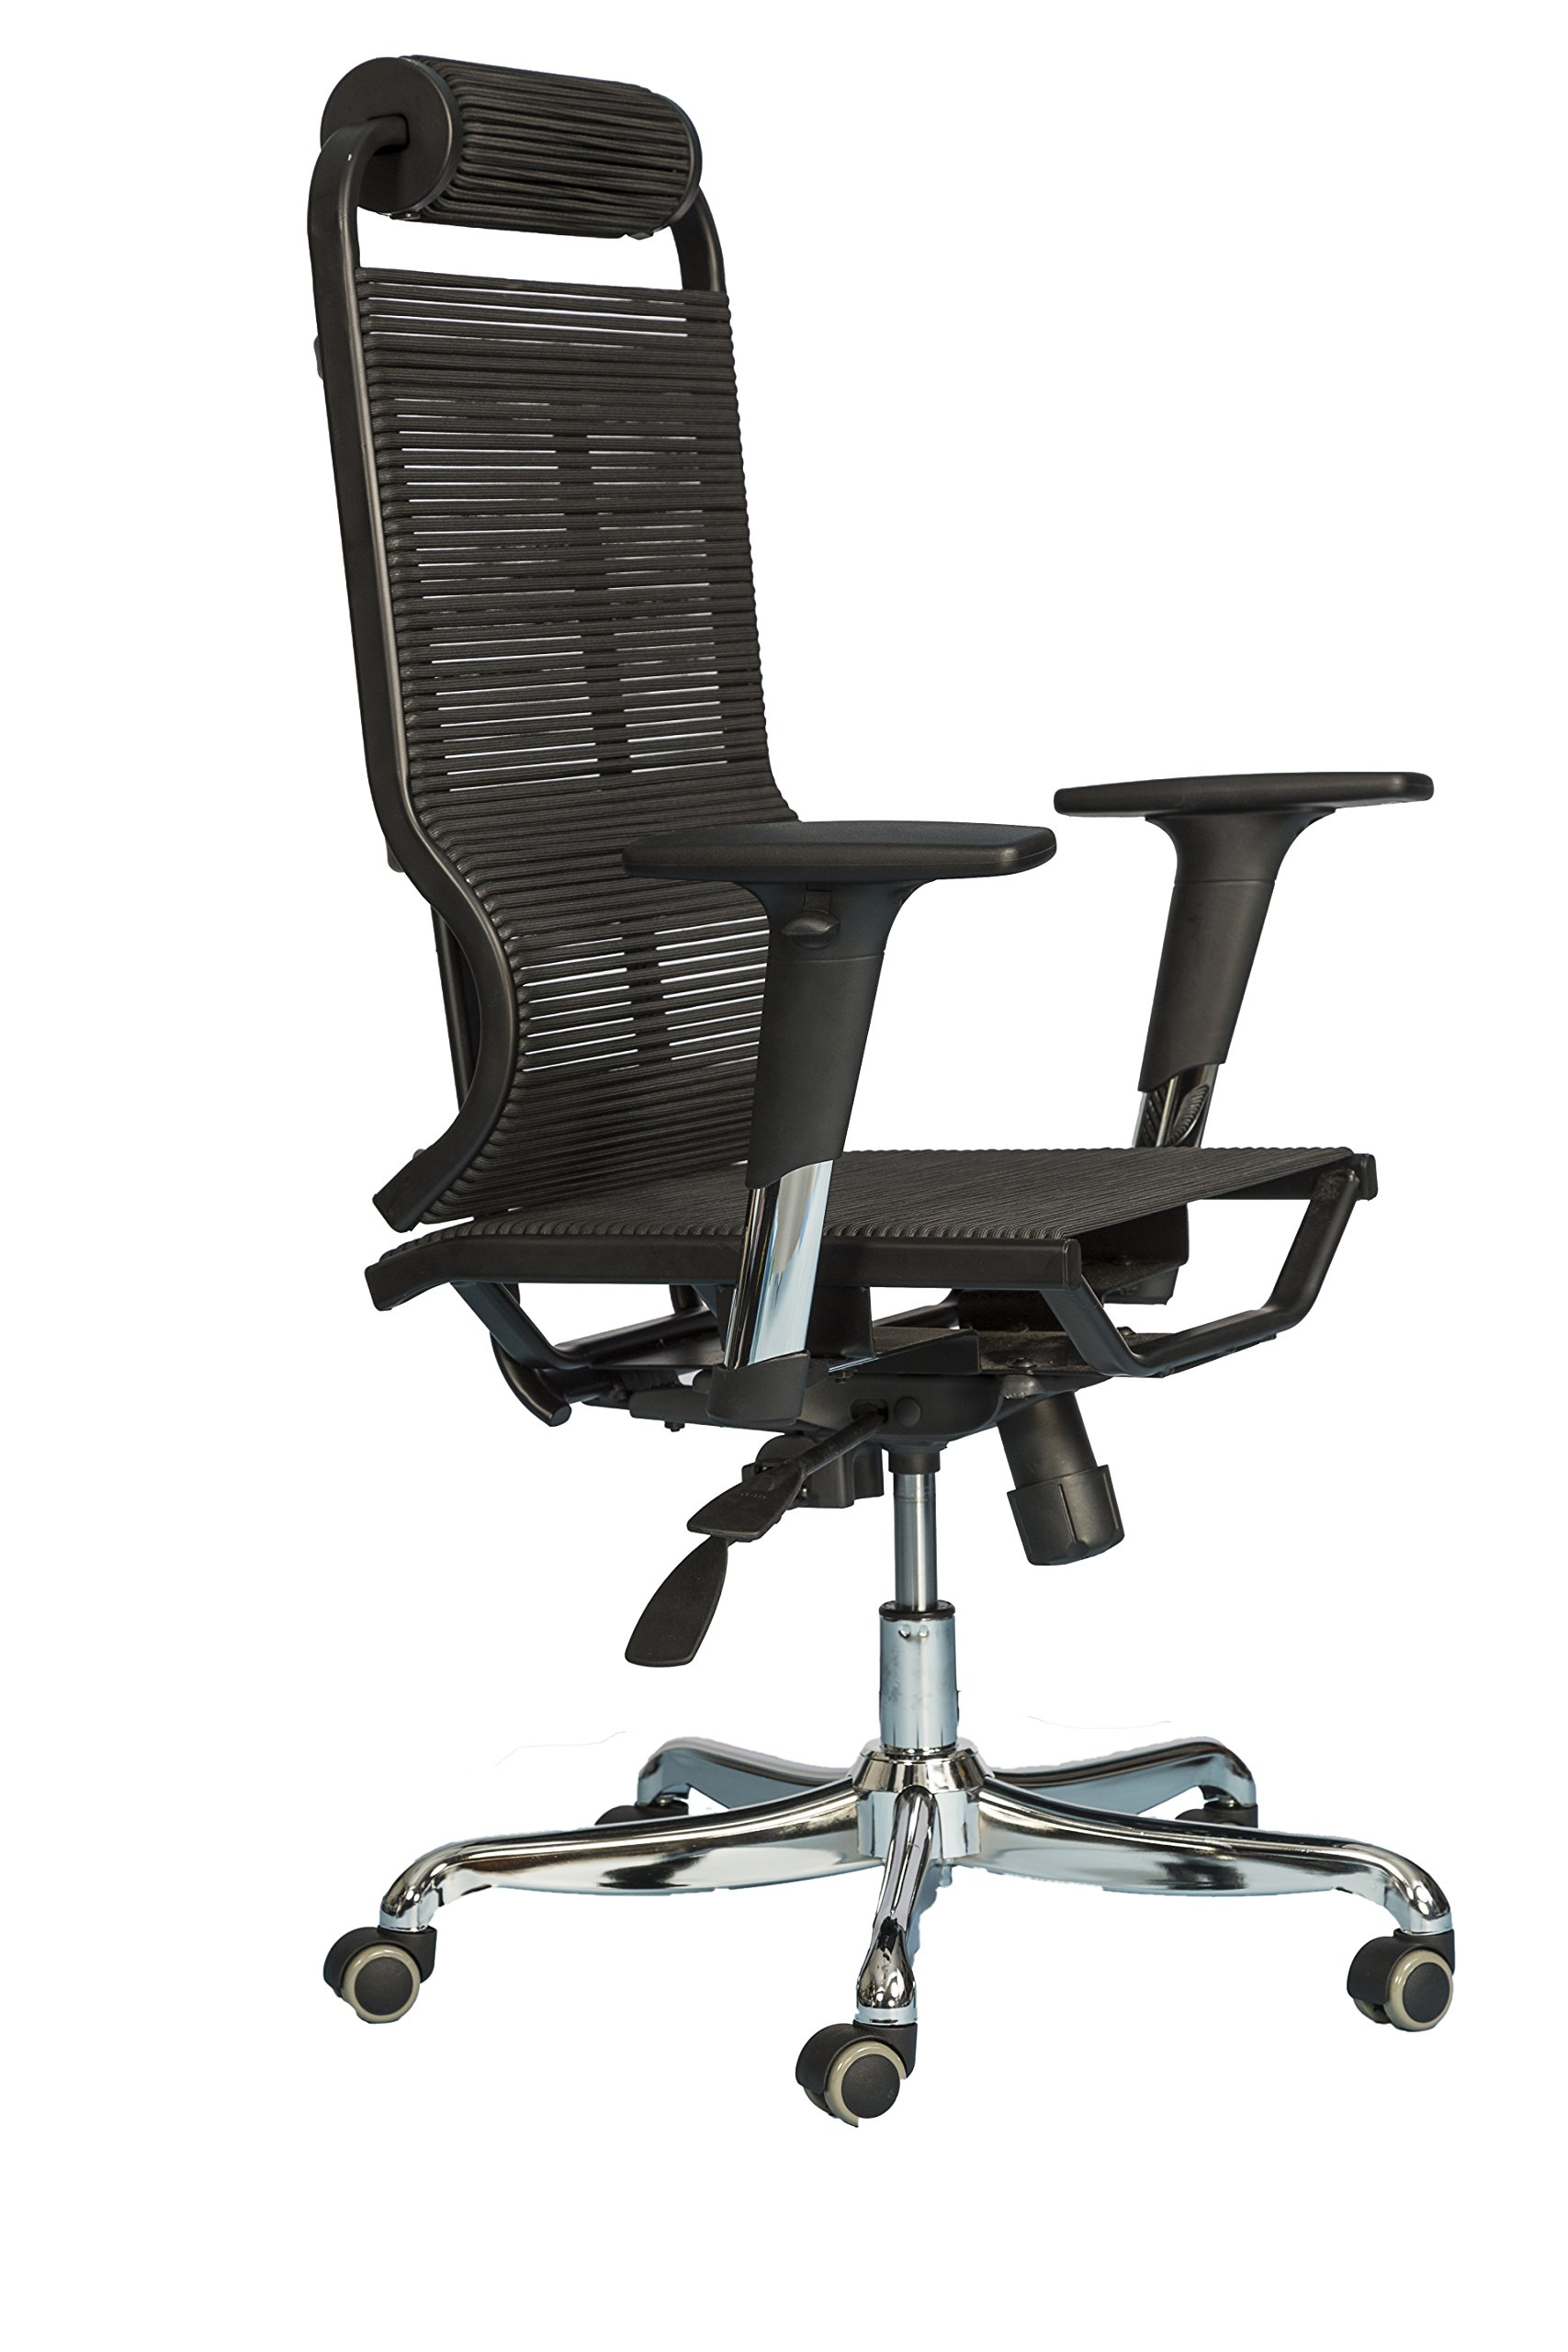 Ergonomic Office Chair High Back – Breathable Comfortable Bungee Seat Mesh & Leather Alternative Executive Computer Desk Task Chair w/ Adjustable Arms, Reclining Ergo Rolling Black Swivel Chair